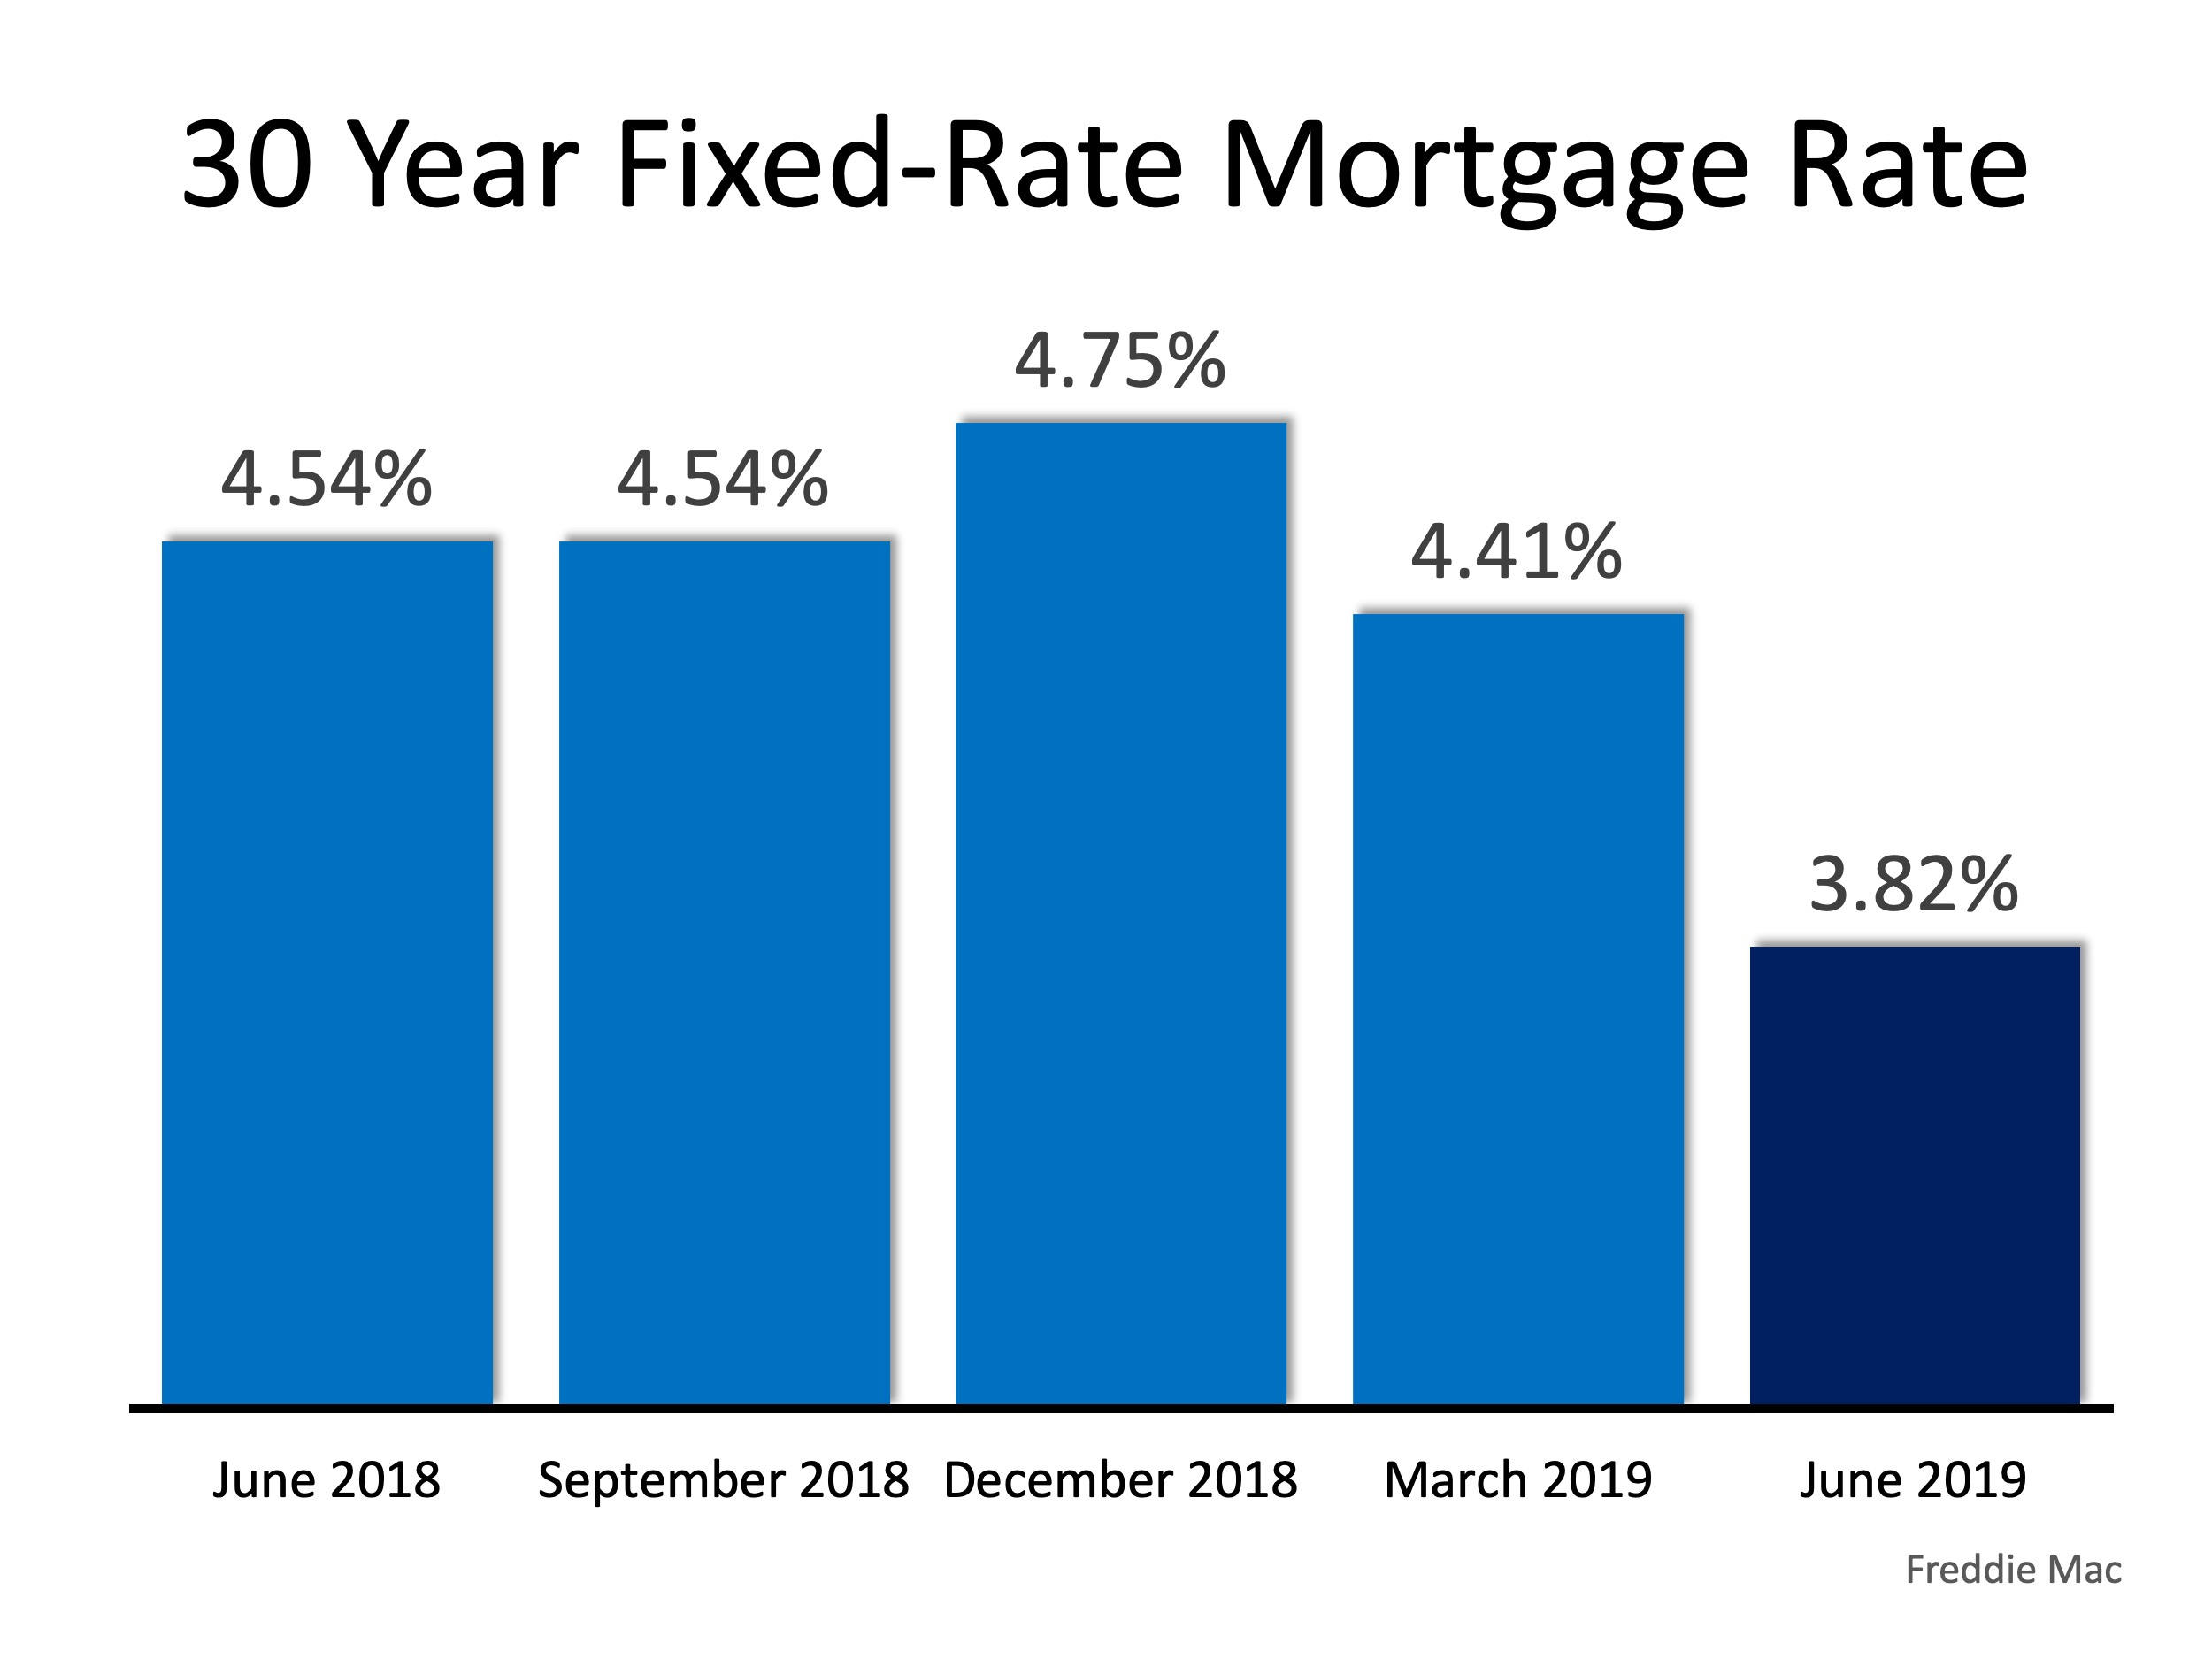 30 year fixed-rate mortgage rate